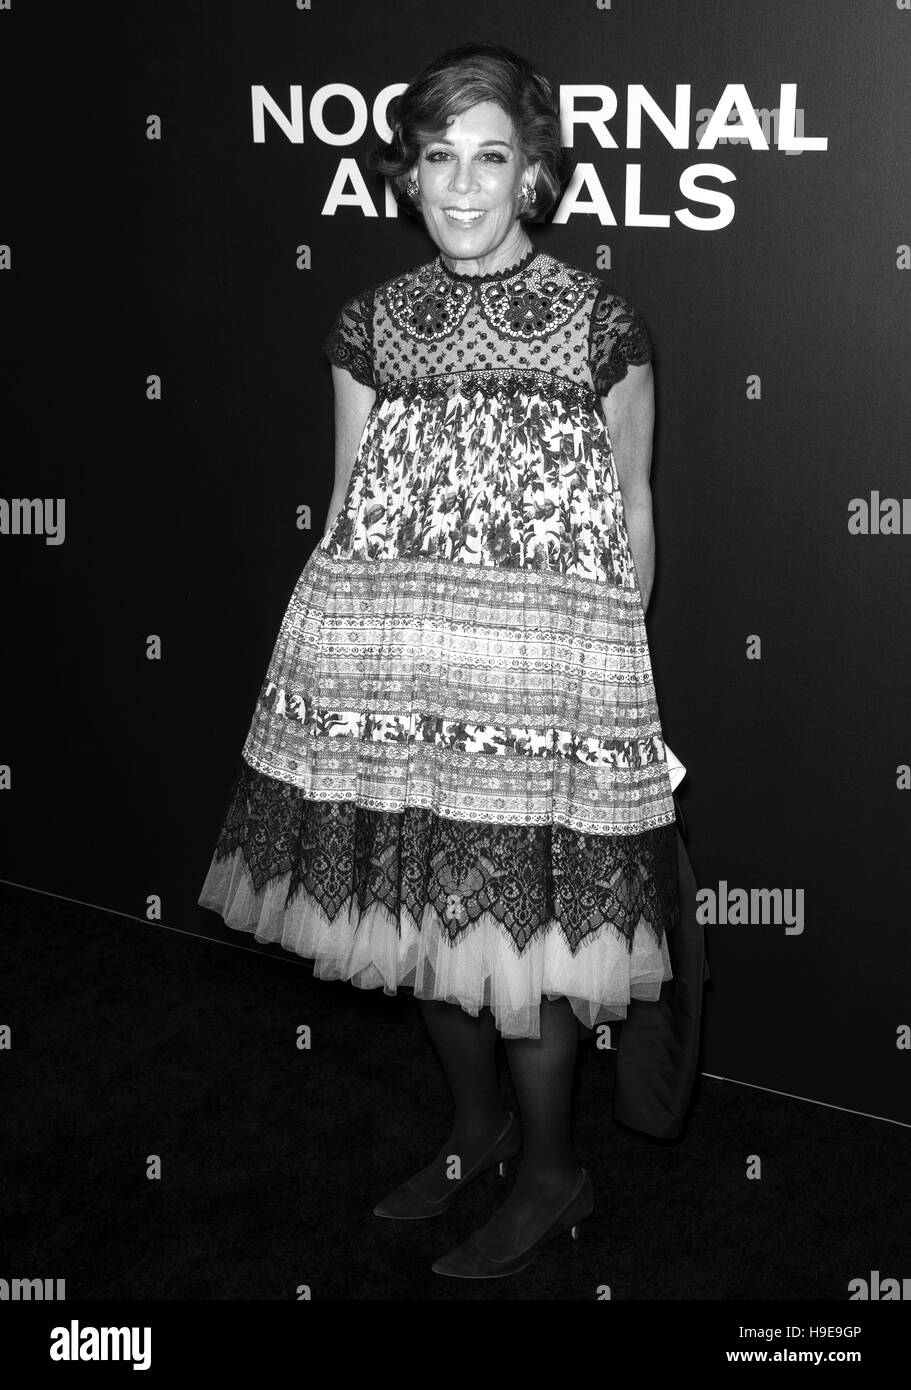 New York City, USA - November 17, 2016: Publicist Peggy Siegal attends the 'Nocturnal Animals' New York premiere Stock Photo